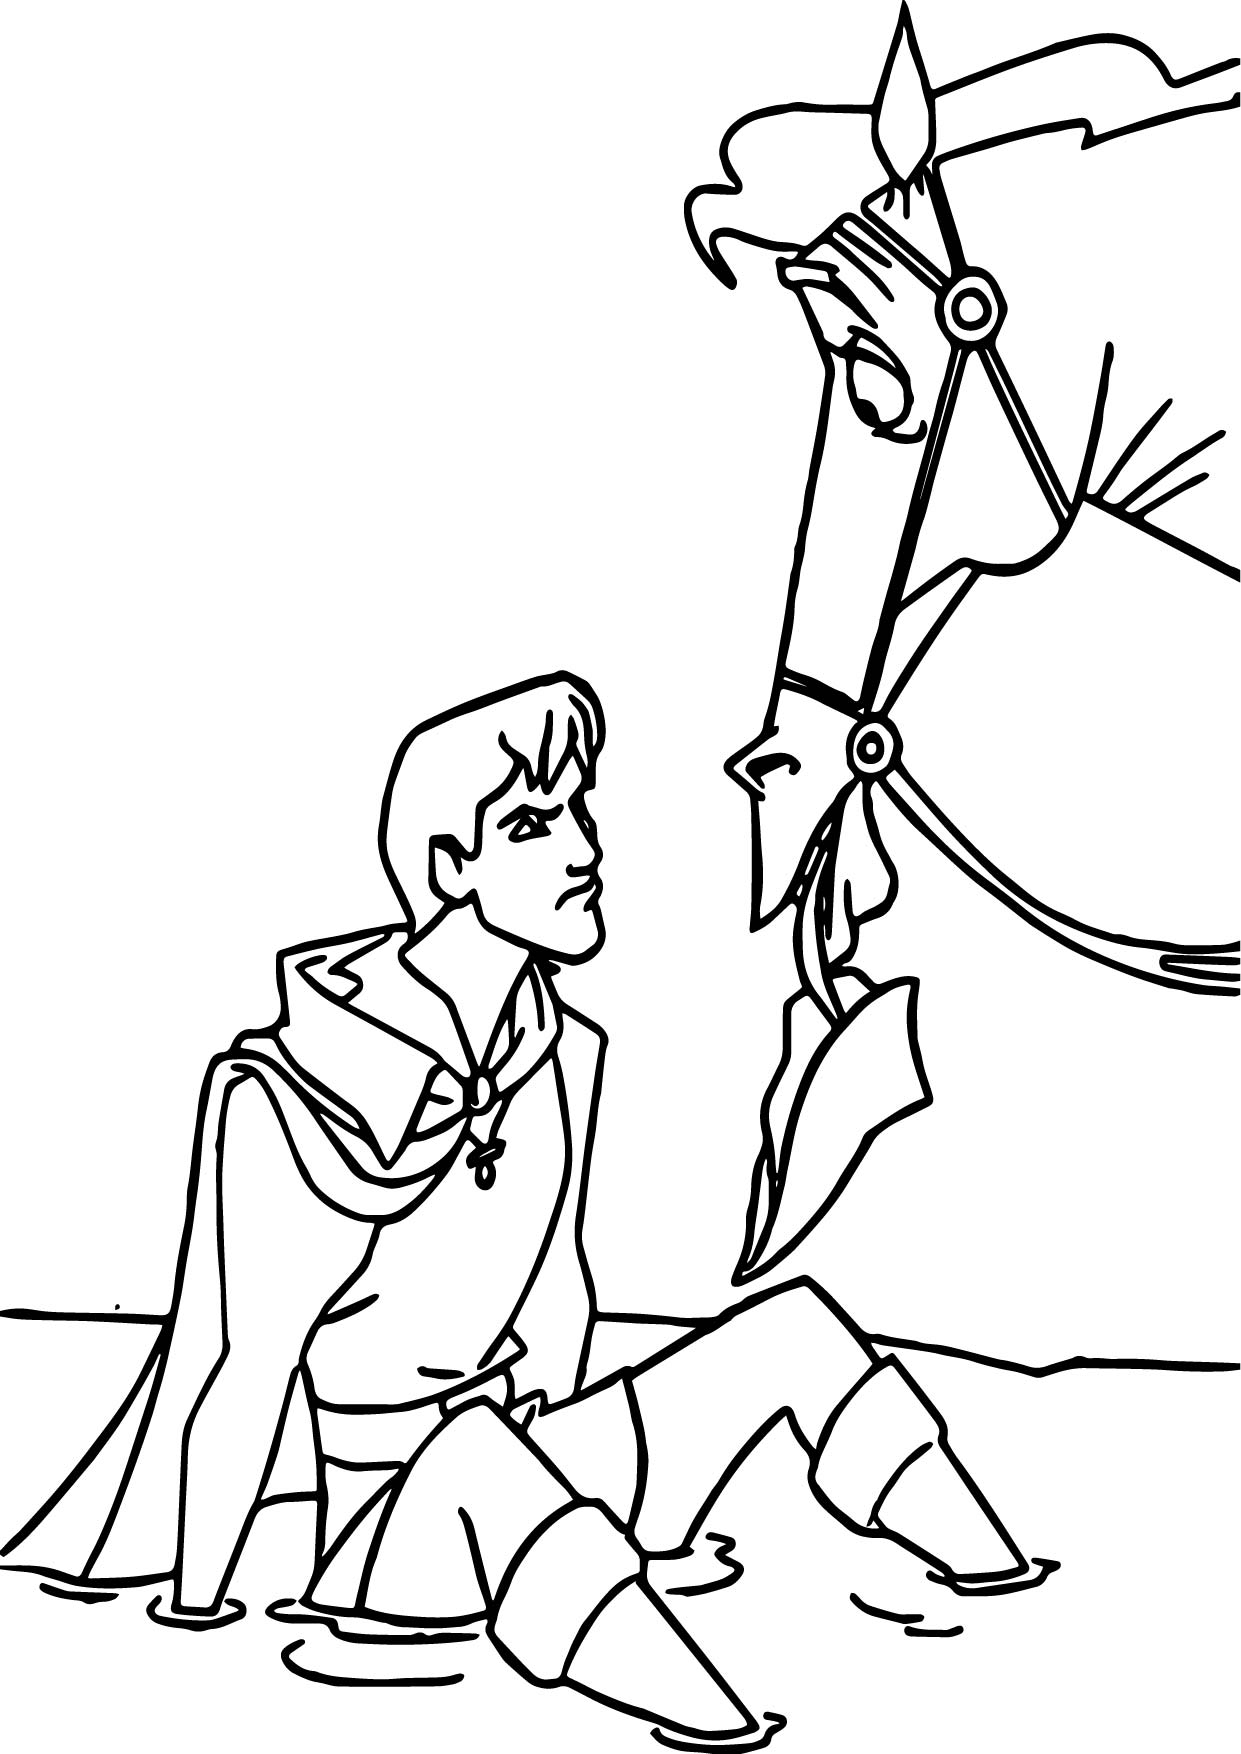 Prince Phillip And Samson Horse Coloring Pages